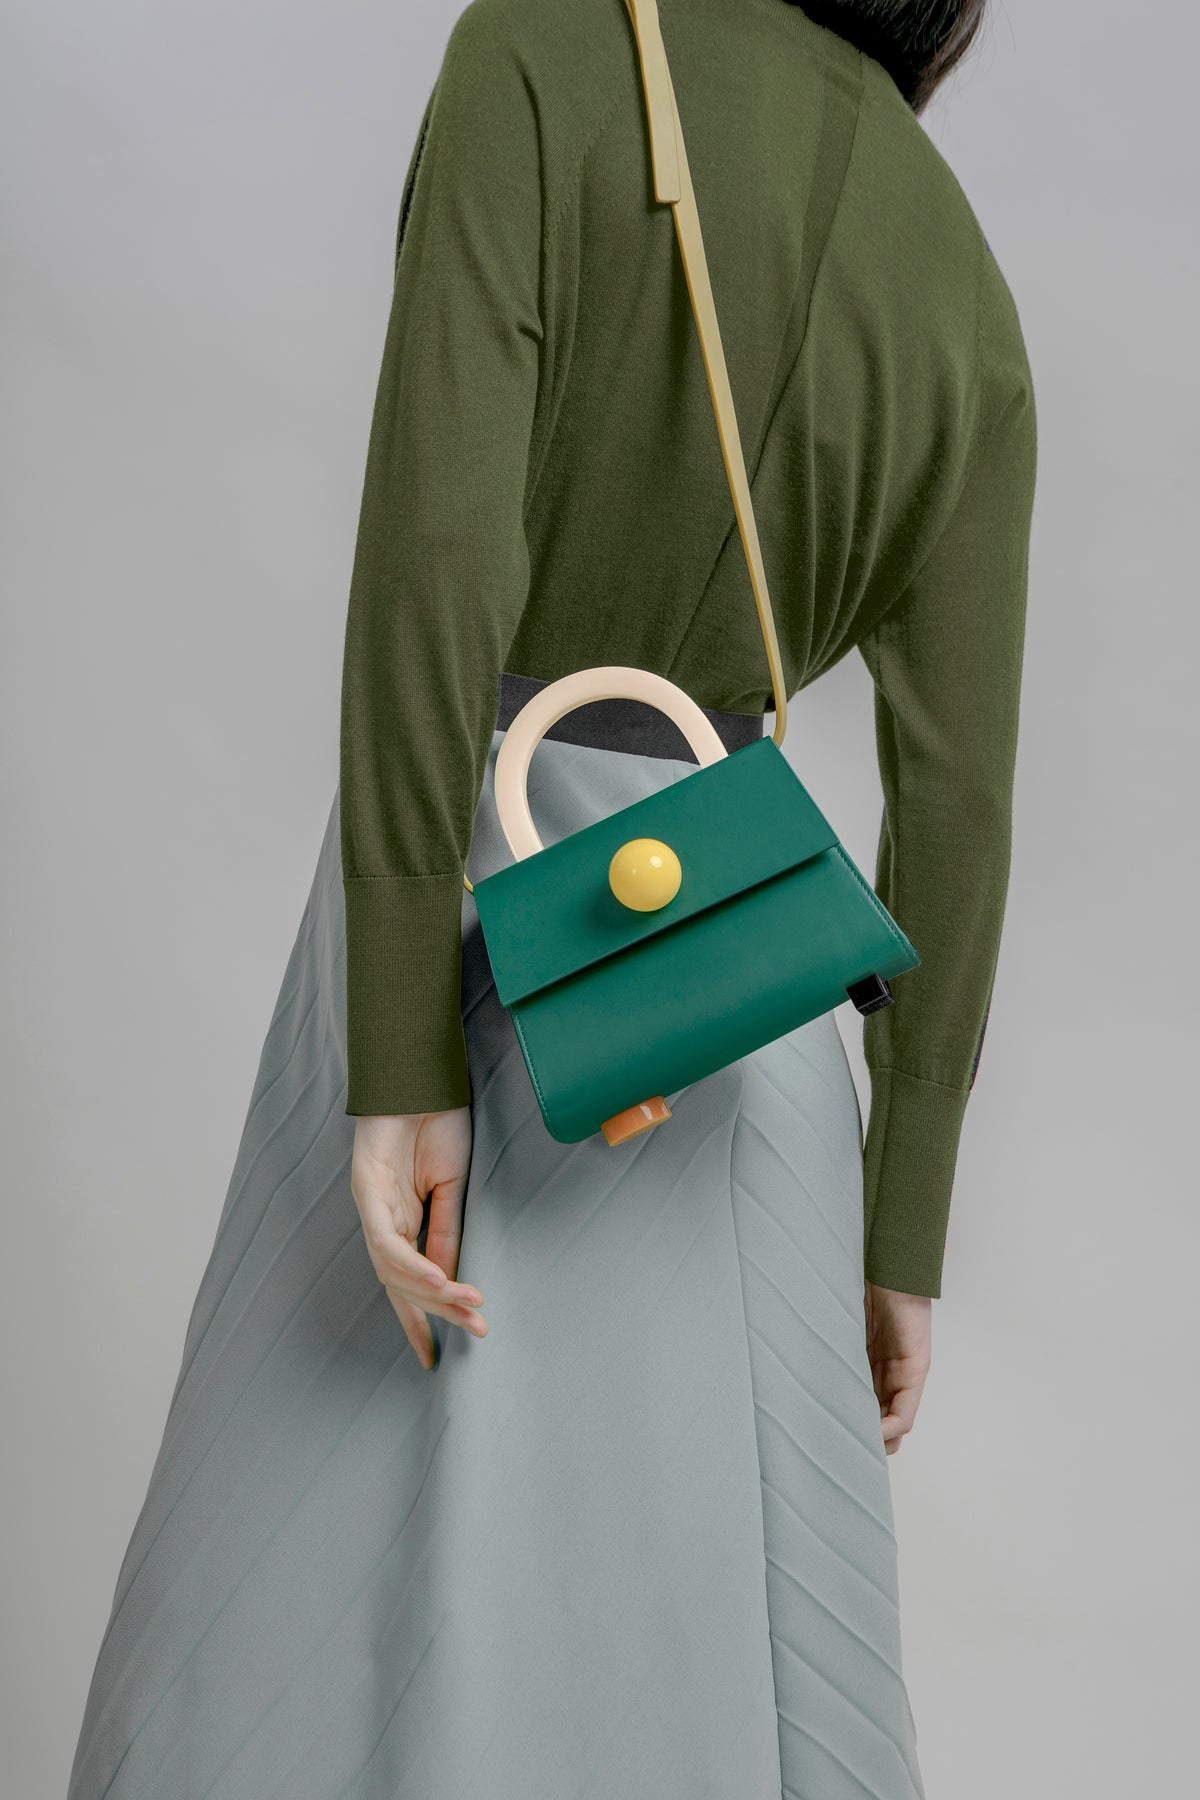 Image of Diva satchel bag • Dark Green with strap - Limited quantities